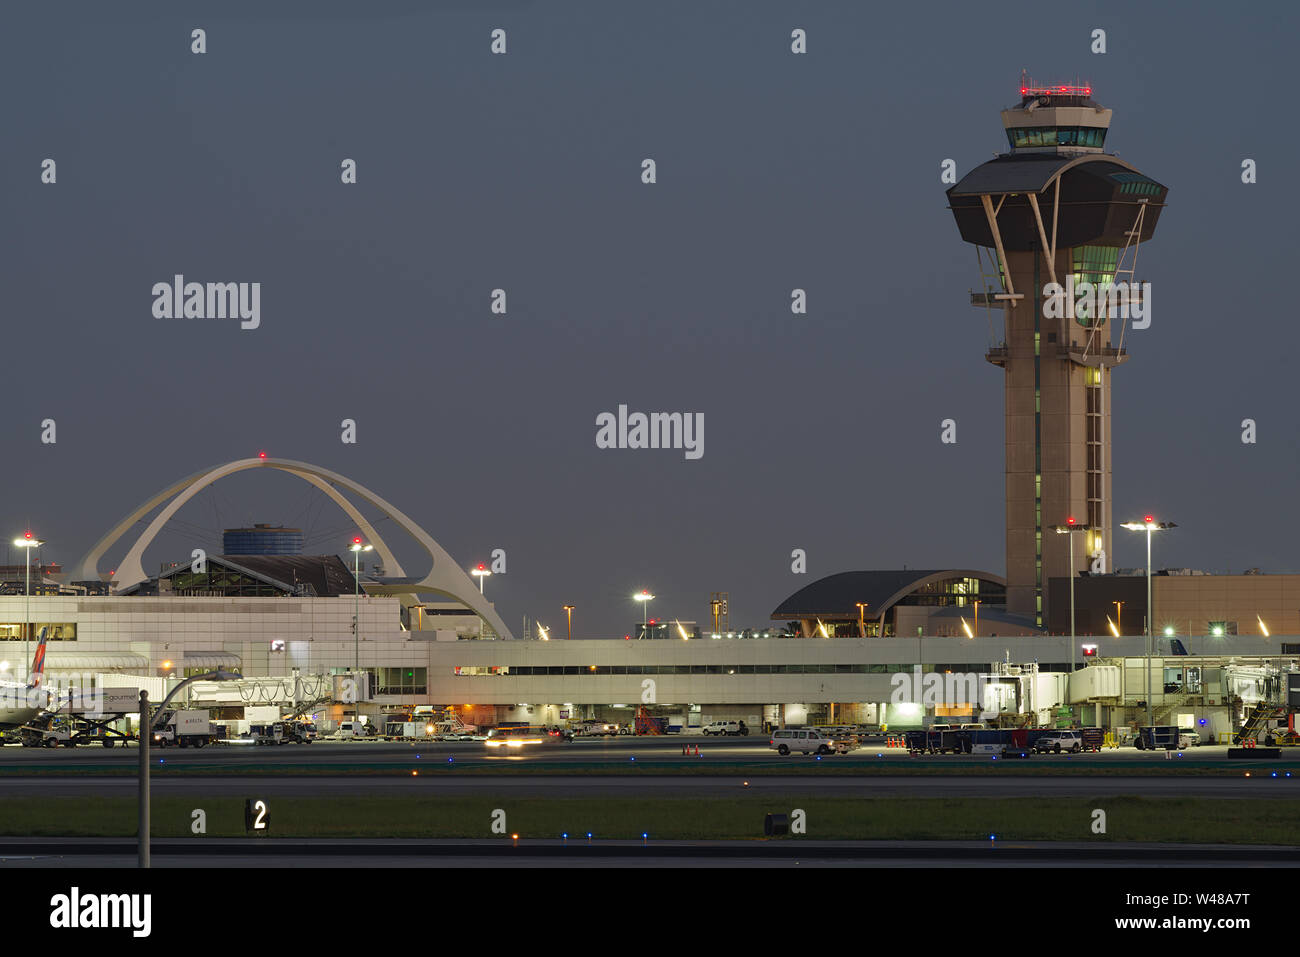 Image showing the landmark Theme Building and the control tower at the Los Angeles Anternational Airport, LAX.. Stock Photo